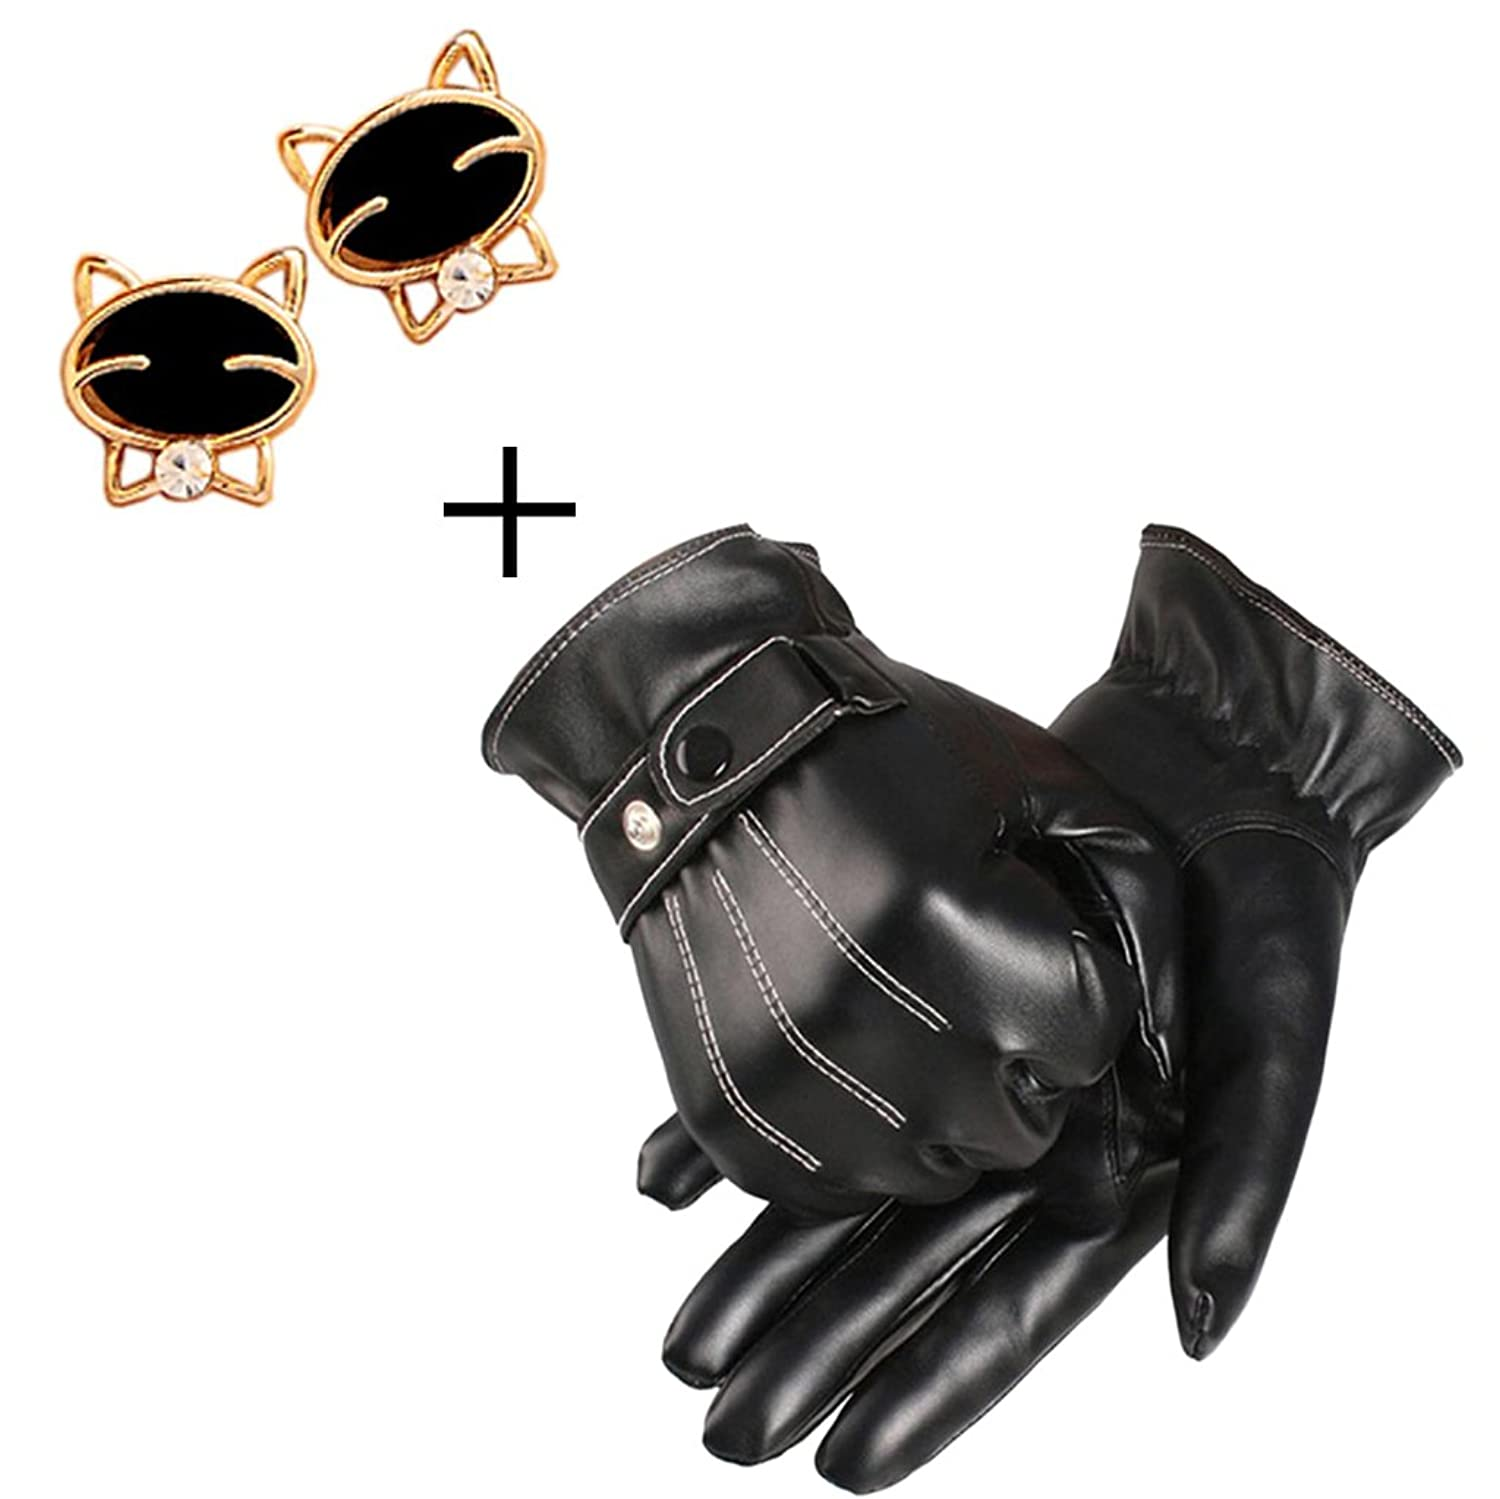 Buy leather gloves perth - Coromose Mens Leather Winter Super Driving Warm Gloves At Amazon Men S Clothing Store